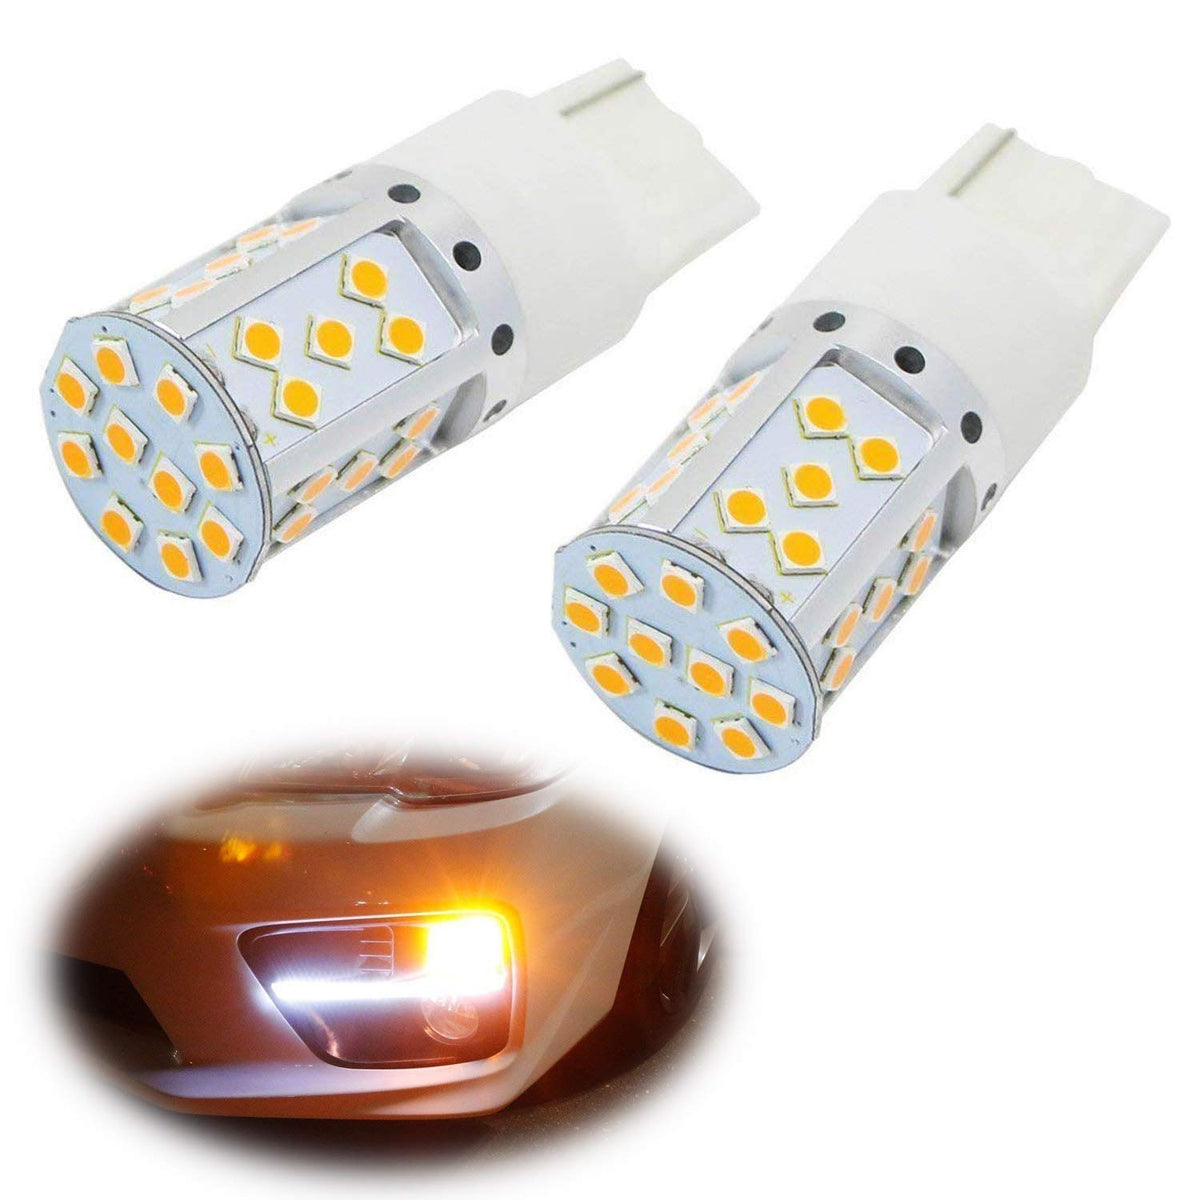 Brake//Tail Light Pack of 2 VANSYROY 7443 7440 7441 7444 WY21W T20 LED Bulbs Amber Yellow Parking//Running Lights Super Bright 58-SMD with Projector Replacement for Turn Signal Blinker Light